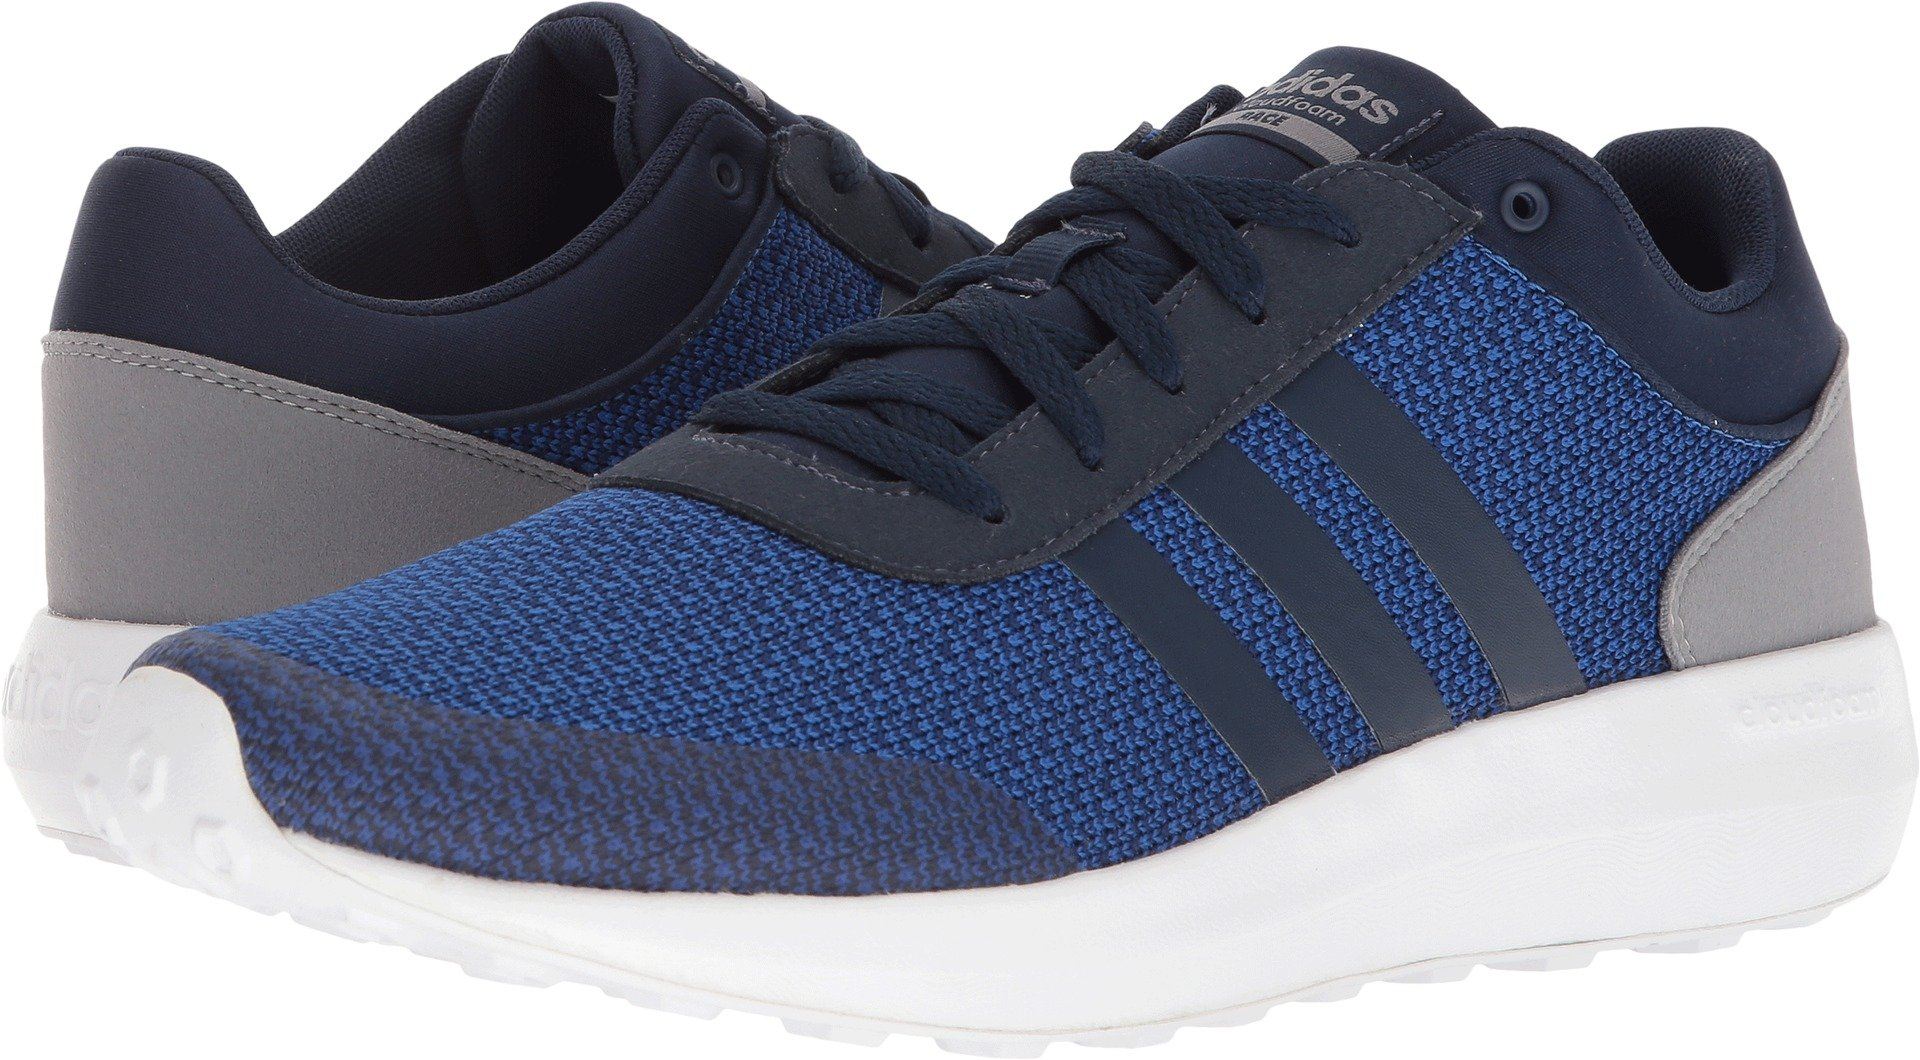 adidas Men's Cloudfoam Race Collegiate Navy/Collegiate Navy/Royal 10.5 D US by adidas